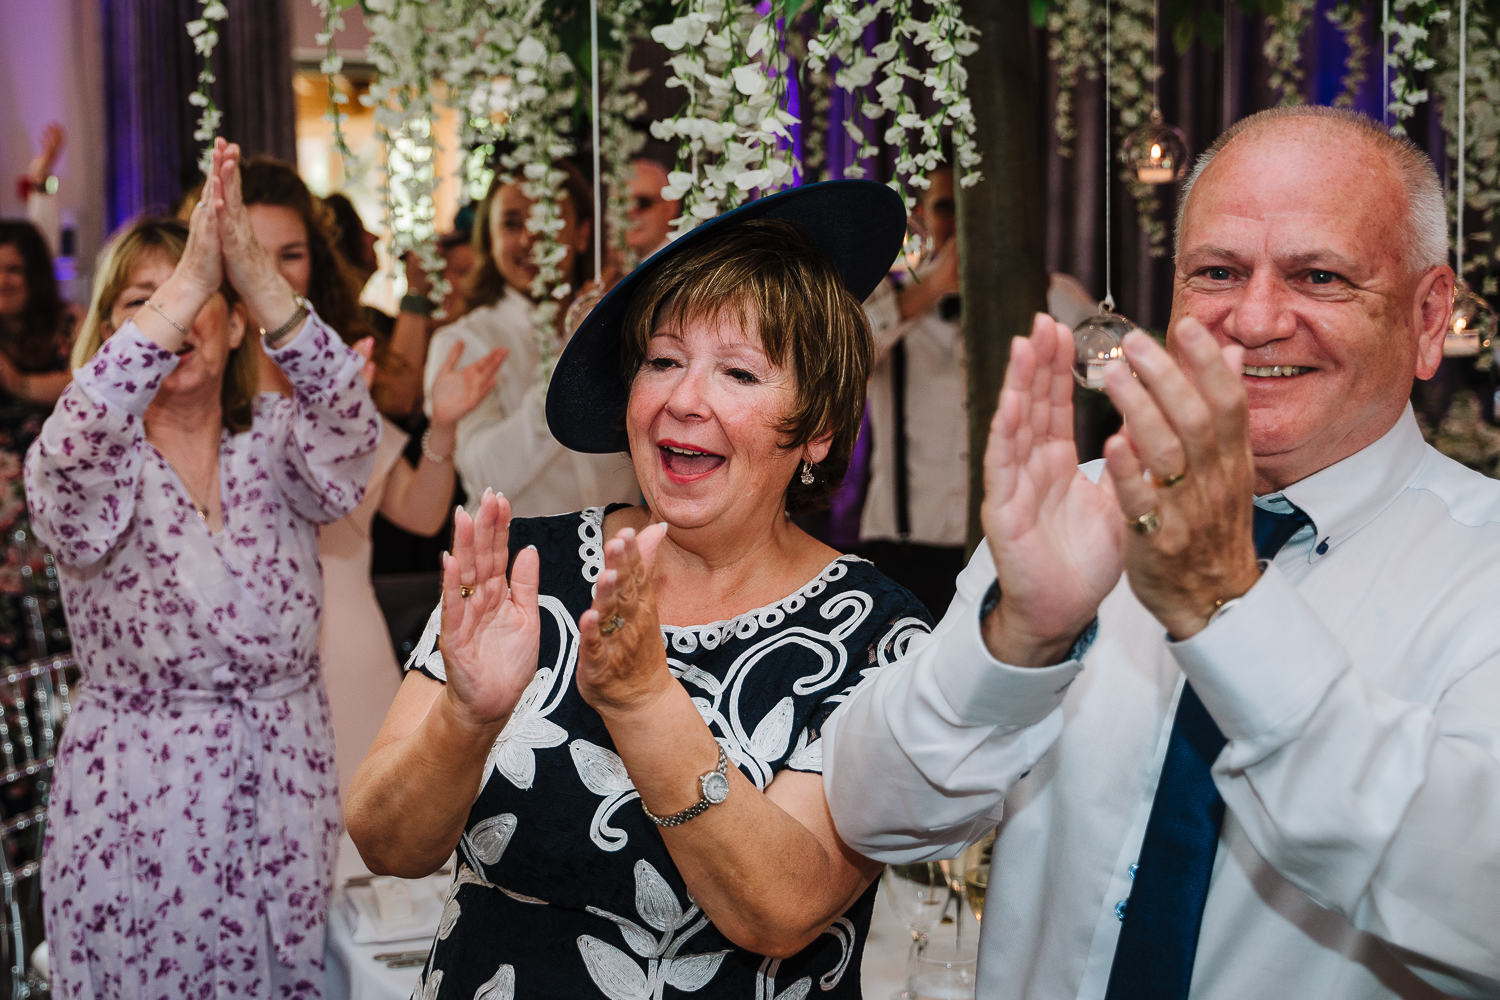 Wedding guests clapping at Merrydale Manor